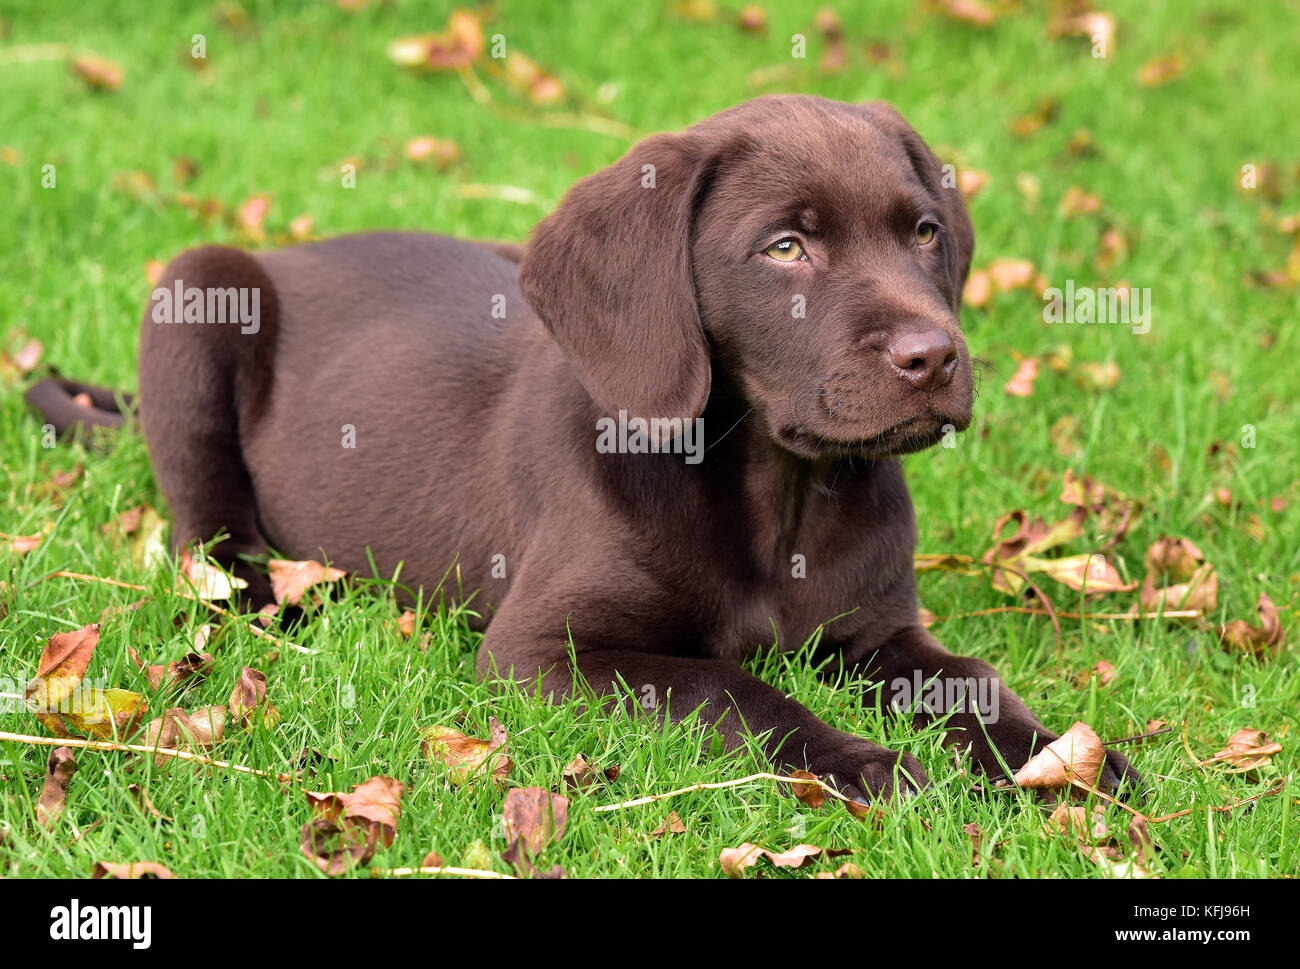 a labradinger or springador puppy dog lying down and playing in a grass field looking at the owner and undergoing - Stock Image